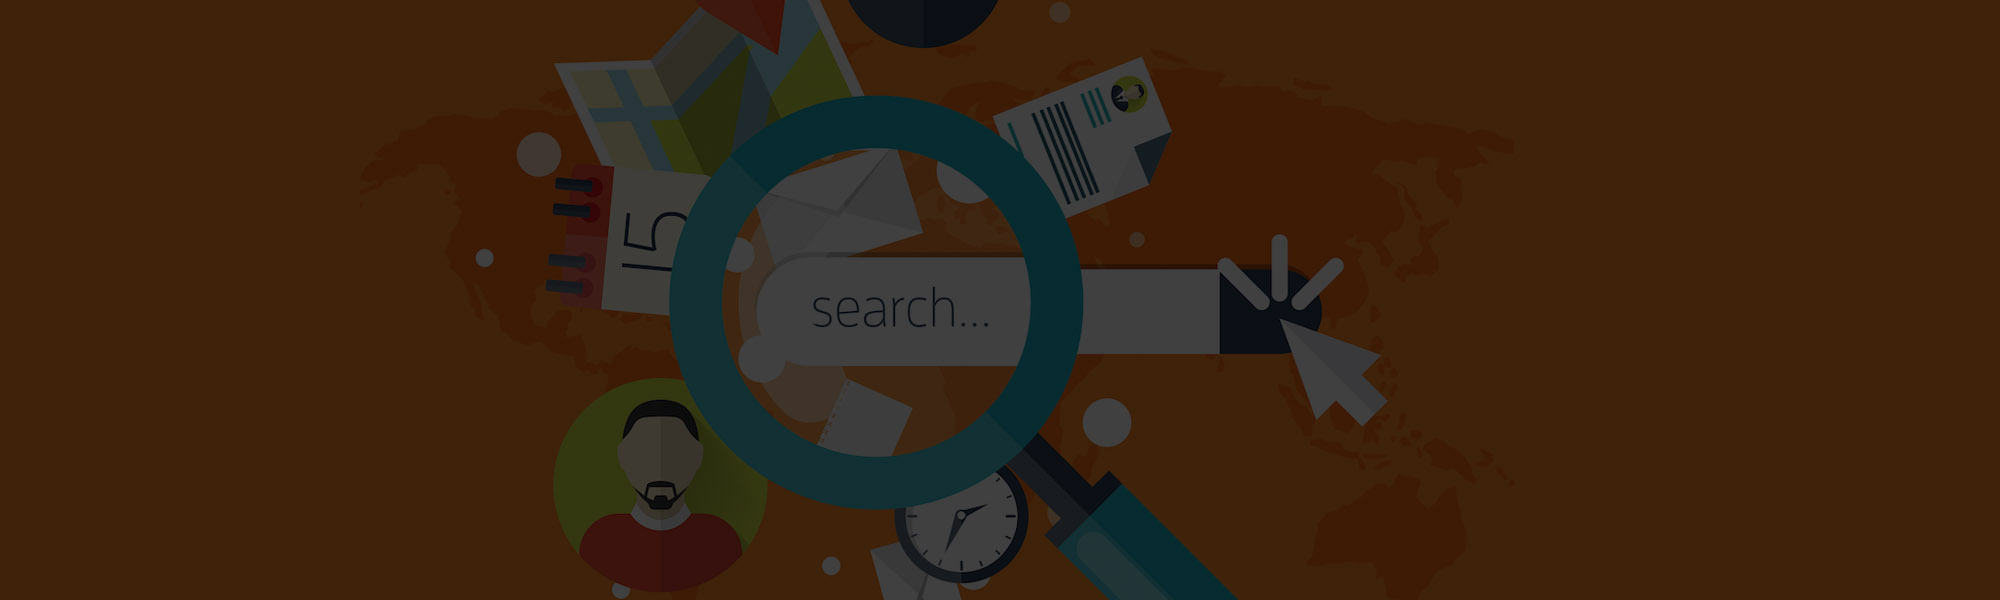 How publishers can thrive in the era of visual search